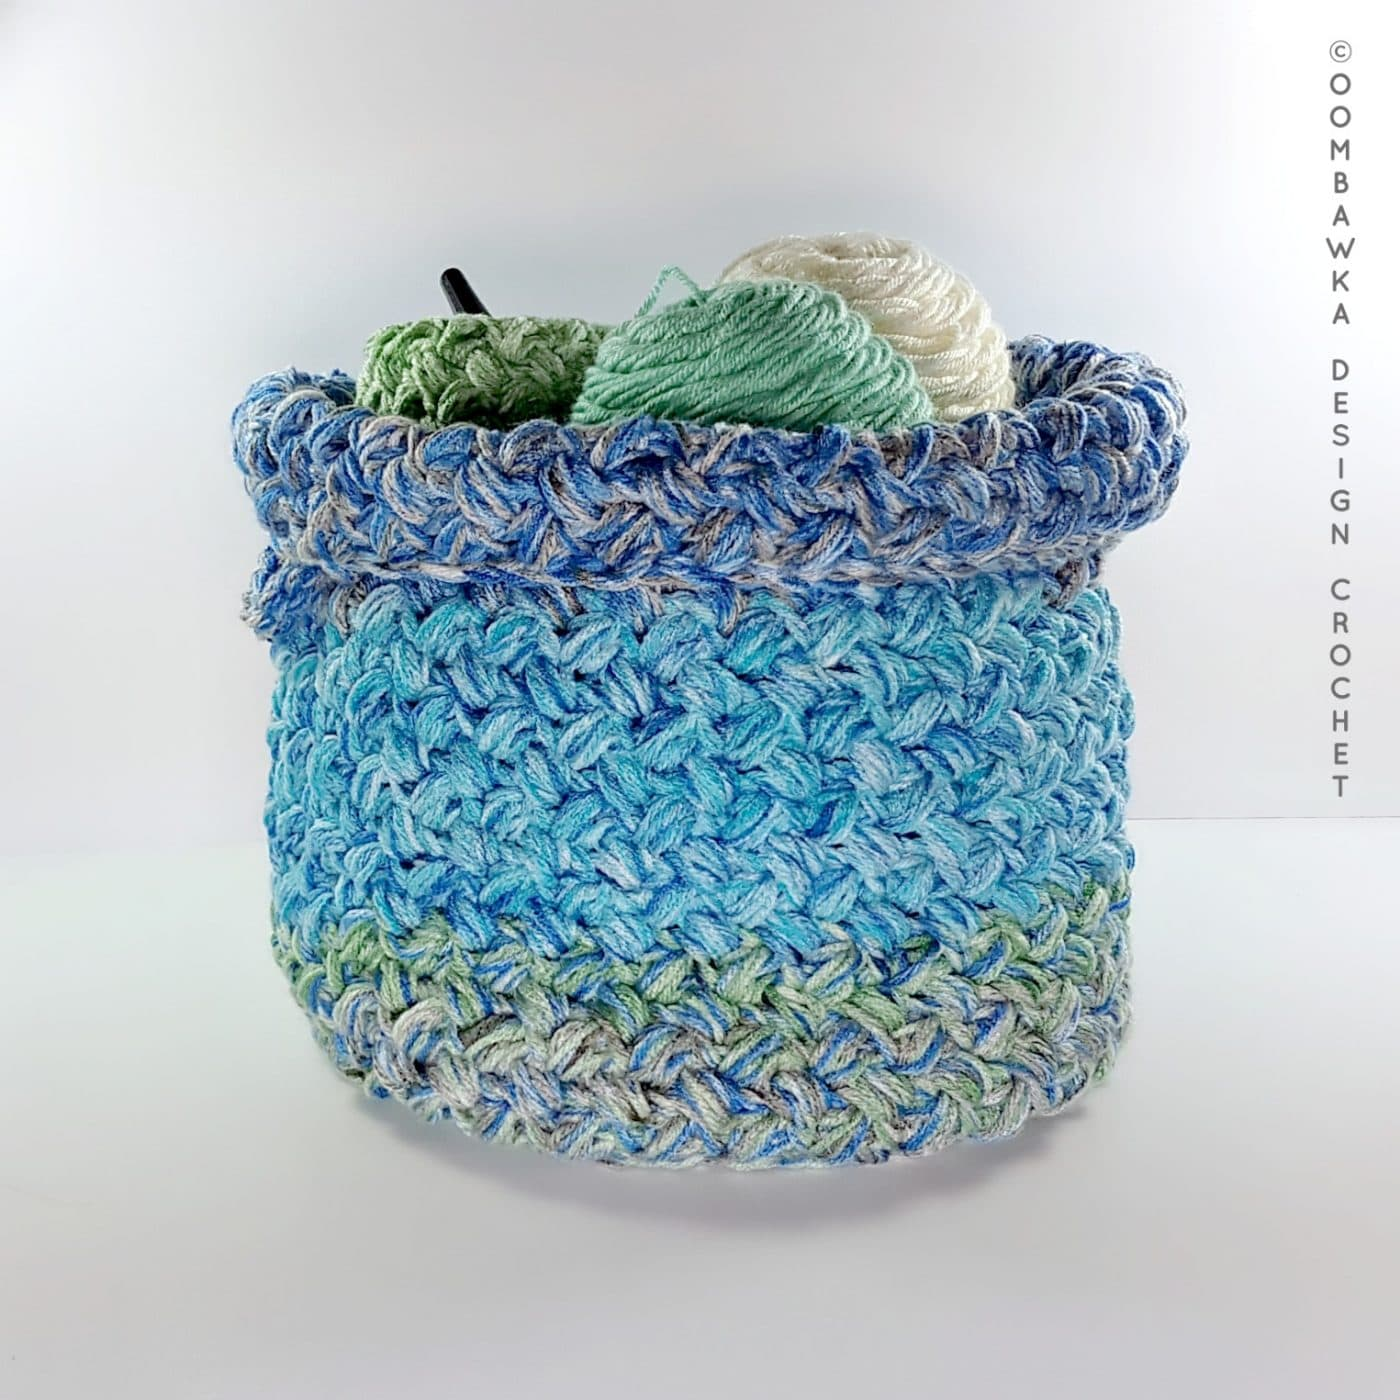 Yarn Stash Basket Free Pattern Medium Weight Yarn by Oombawka Design 2018 Folded Top